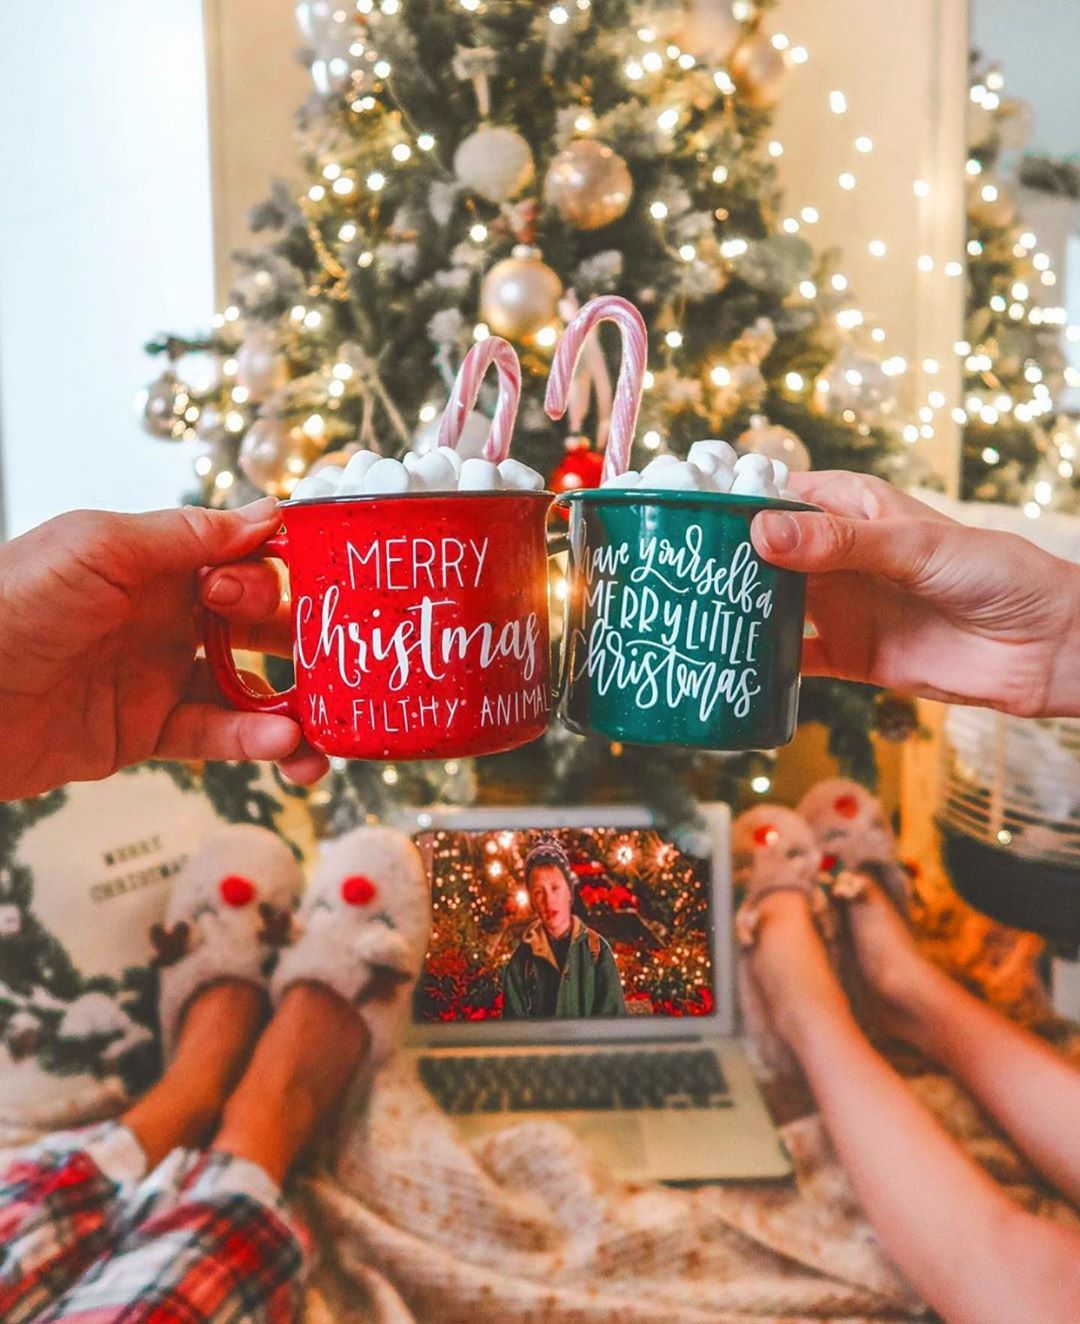 Christmas Wonderland On Instagram All I Want For Christmas Is A Hot Chocolate And My Family In 2020 Fun Christmas Decorations Christmas Aesthetic Christmas Lovers